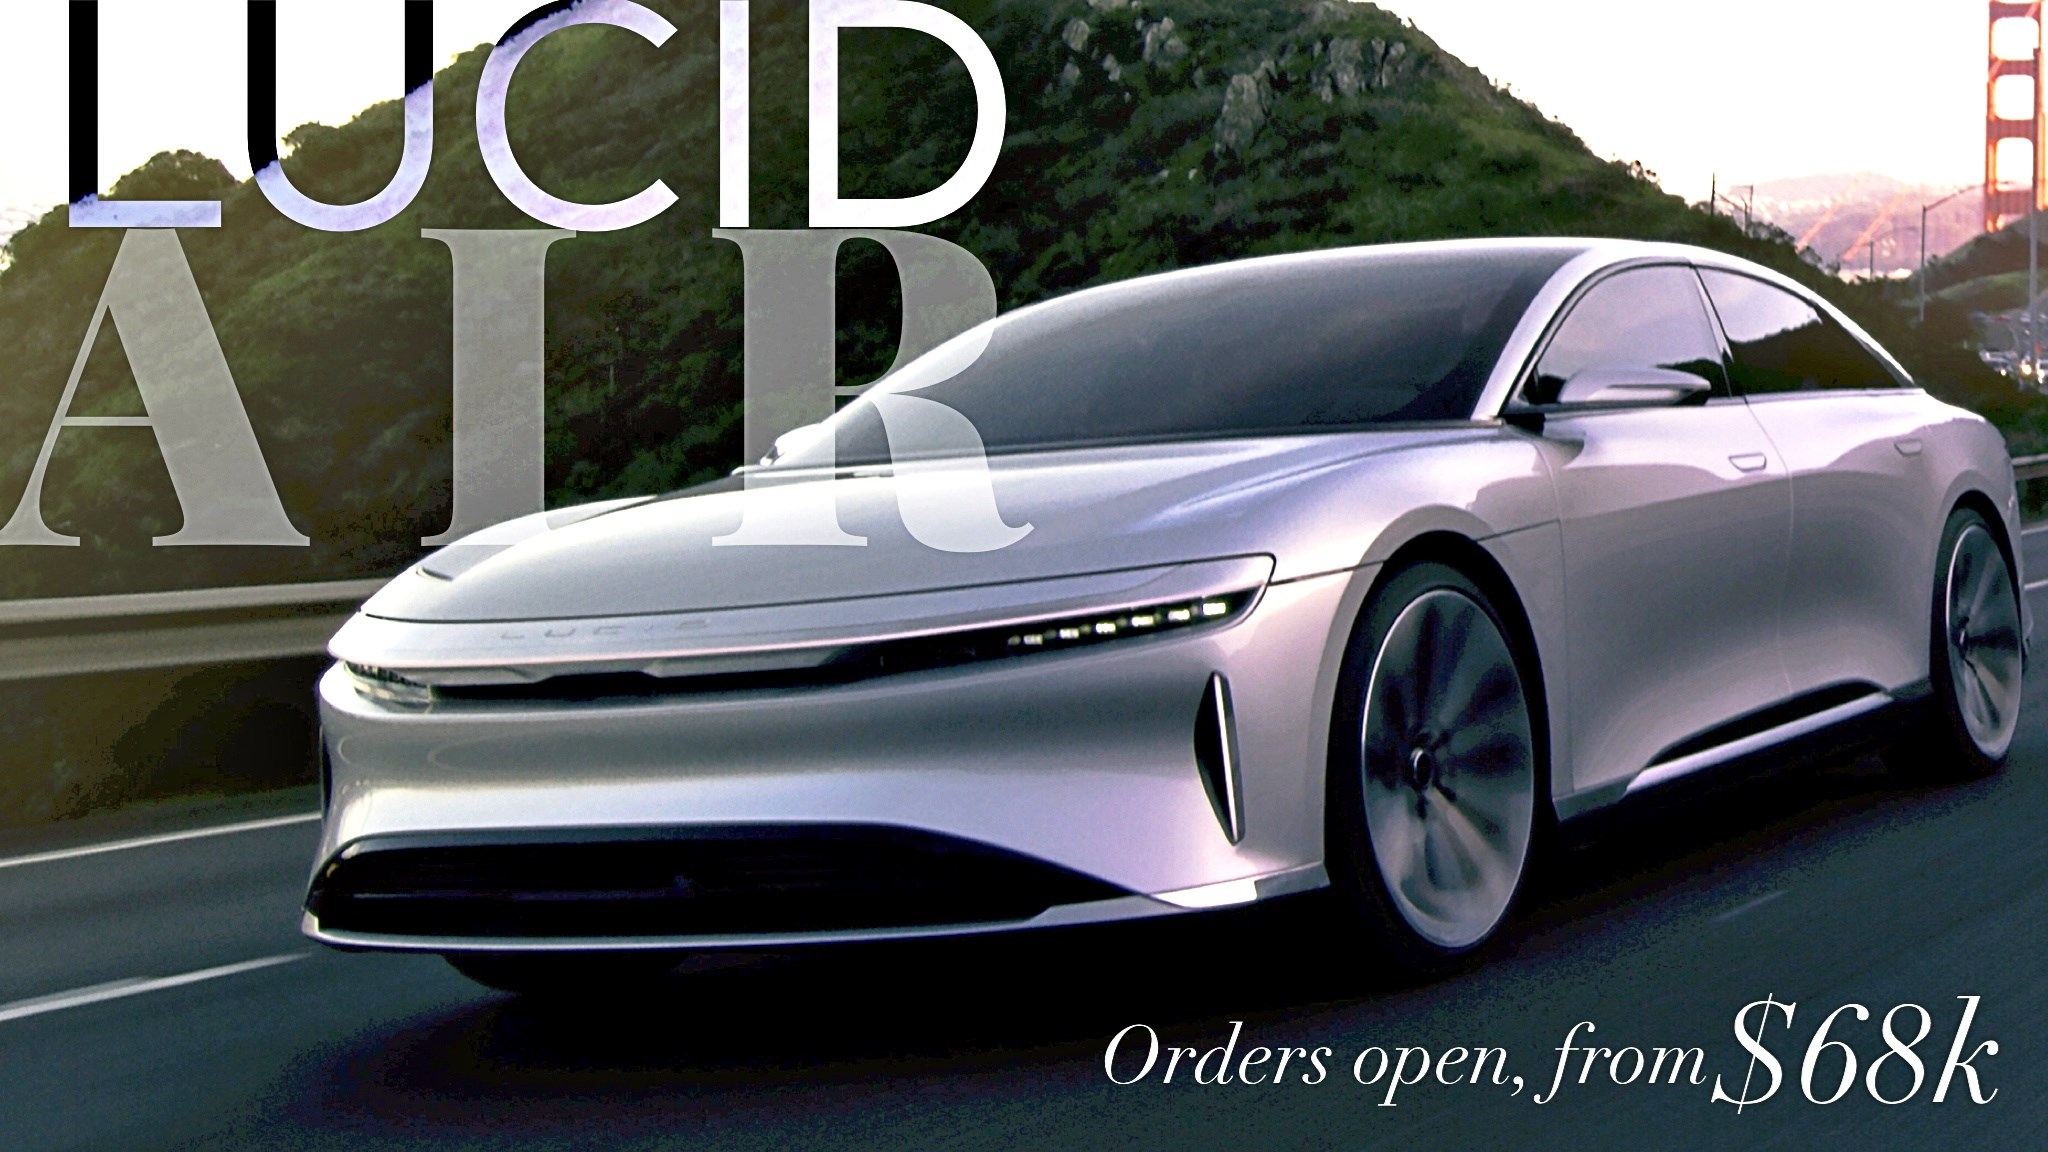 Lucid Air On Sale Now For $68,000